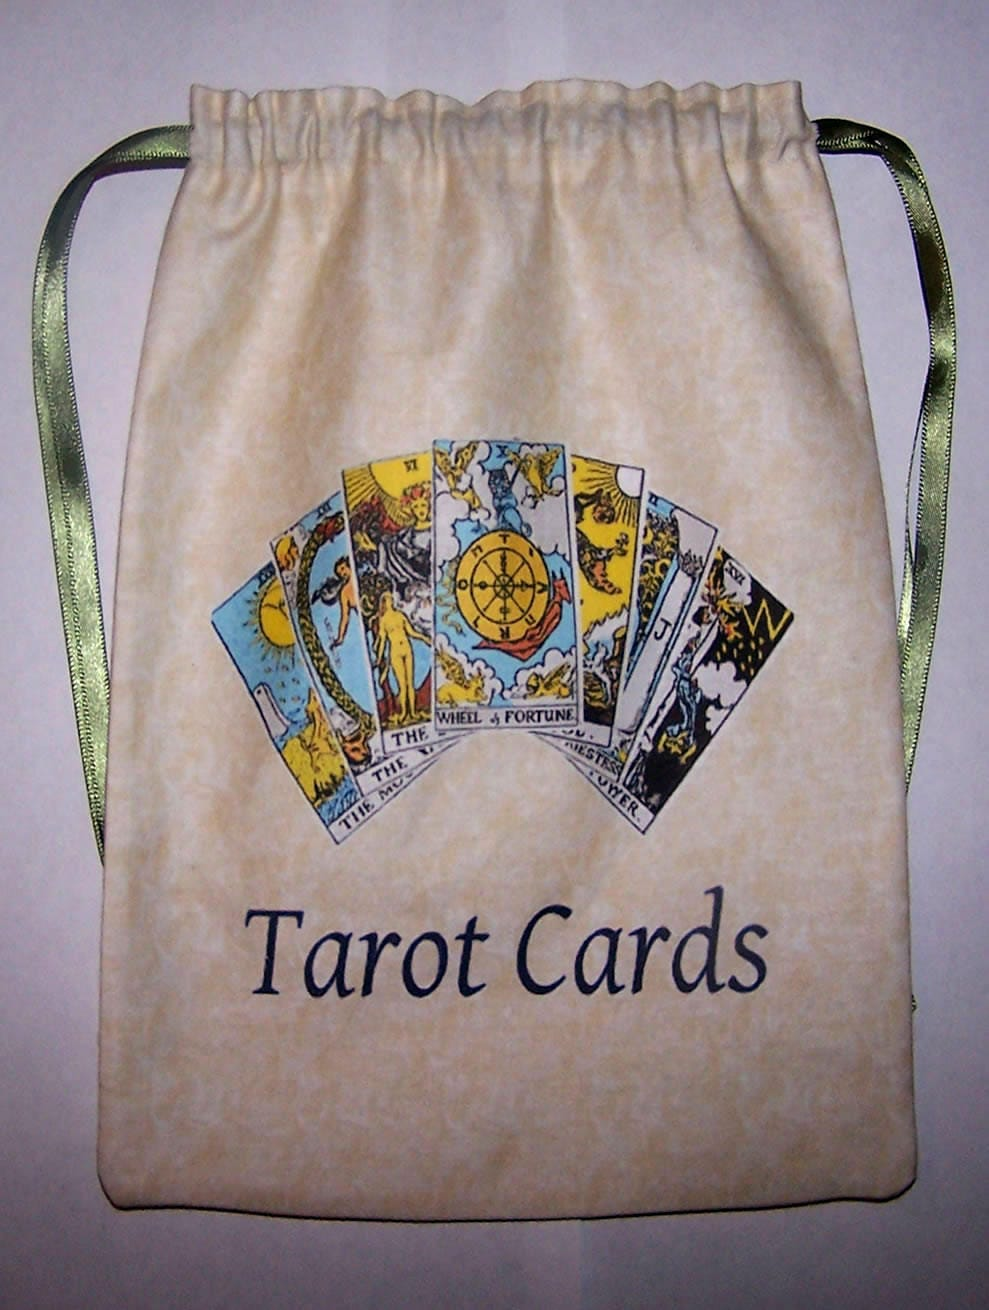 Tarot Bags Tarot Cards Cloths More: Tarot Card Bag Ideal For Most Angel Fairy Or Wicca Cards